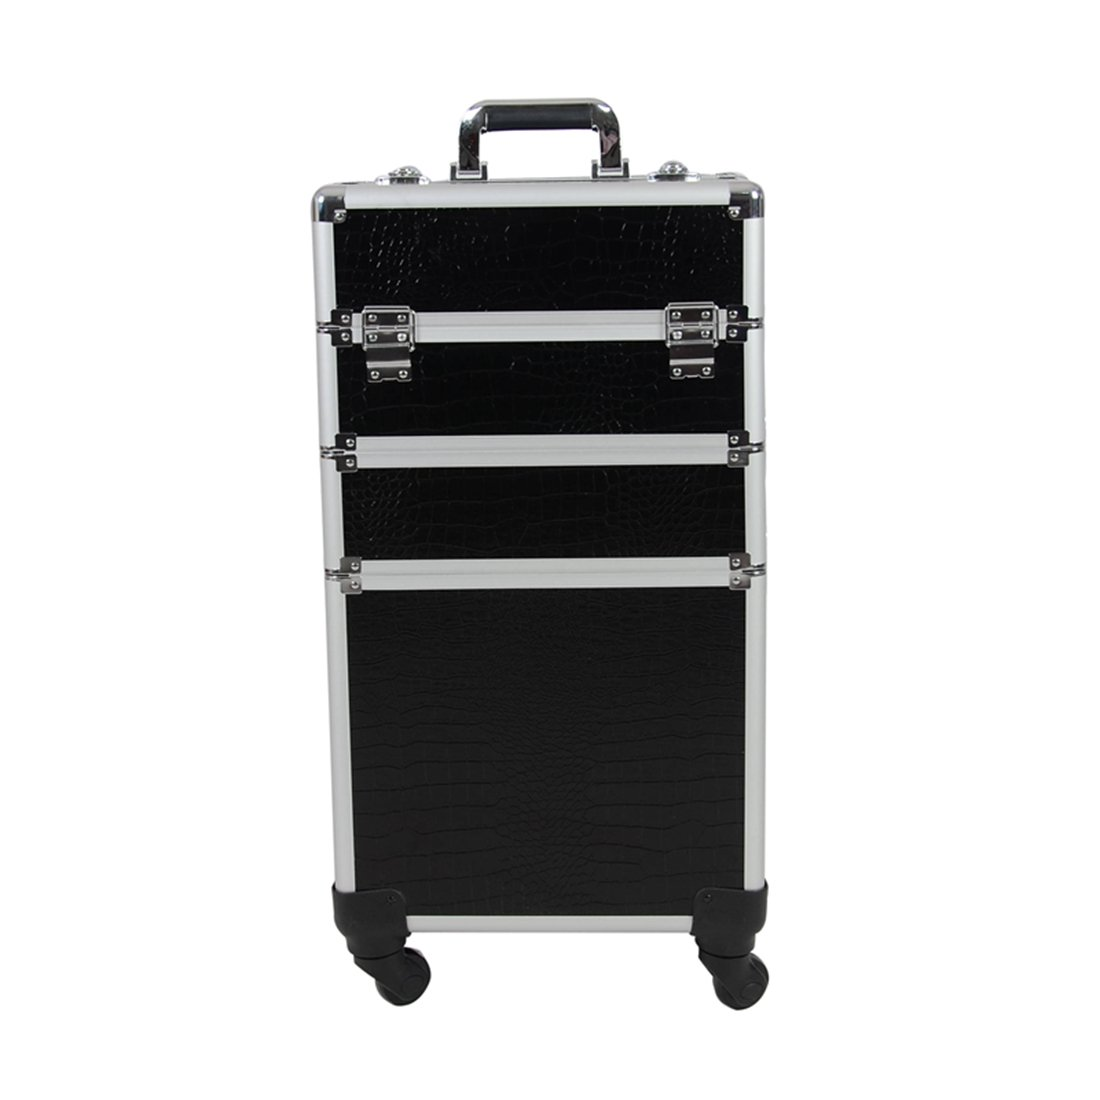 Chichitop Rolling Cosmetic Case Universal Wheel 3 in 1 Professional Multifunction Artist Rolling Trolley Makeup Train Case 4-wheel Cosmetic Box Wheeled Makeup Box Cosmetic Organizer